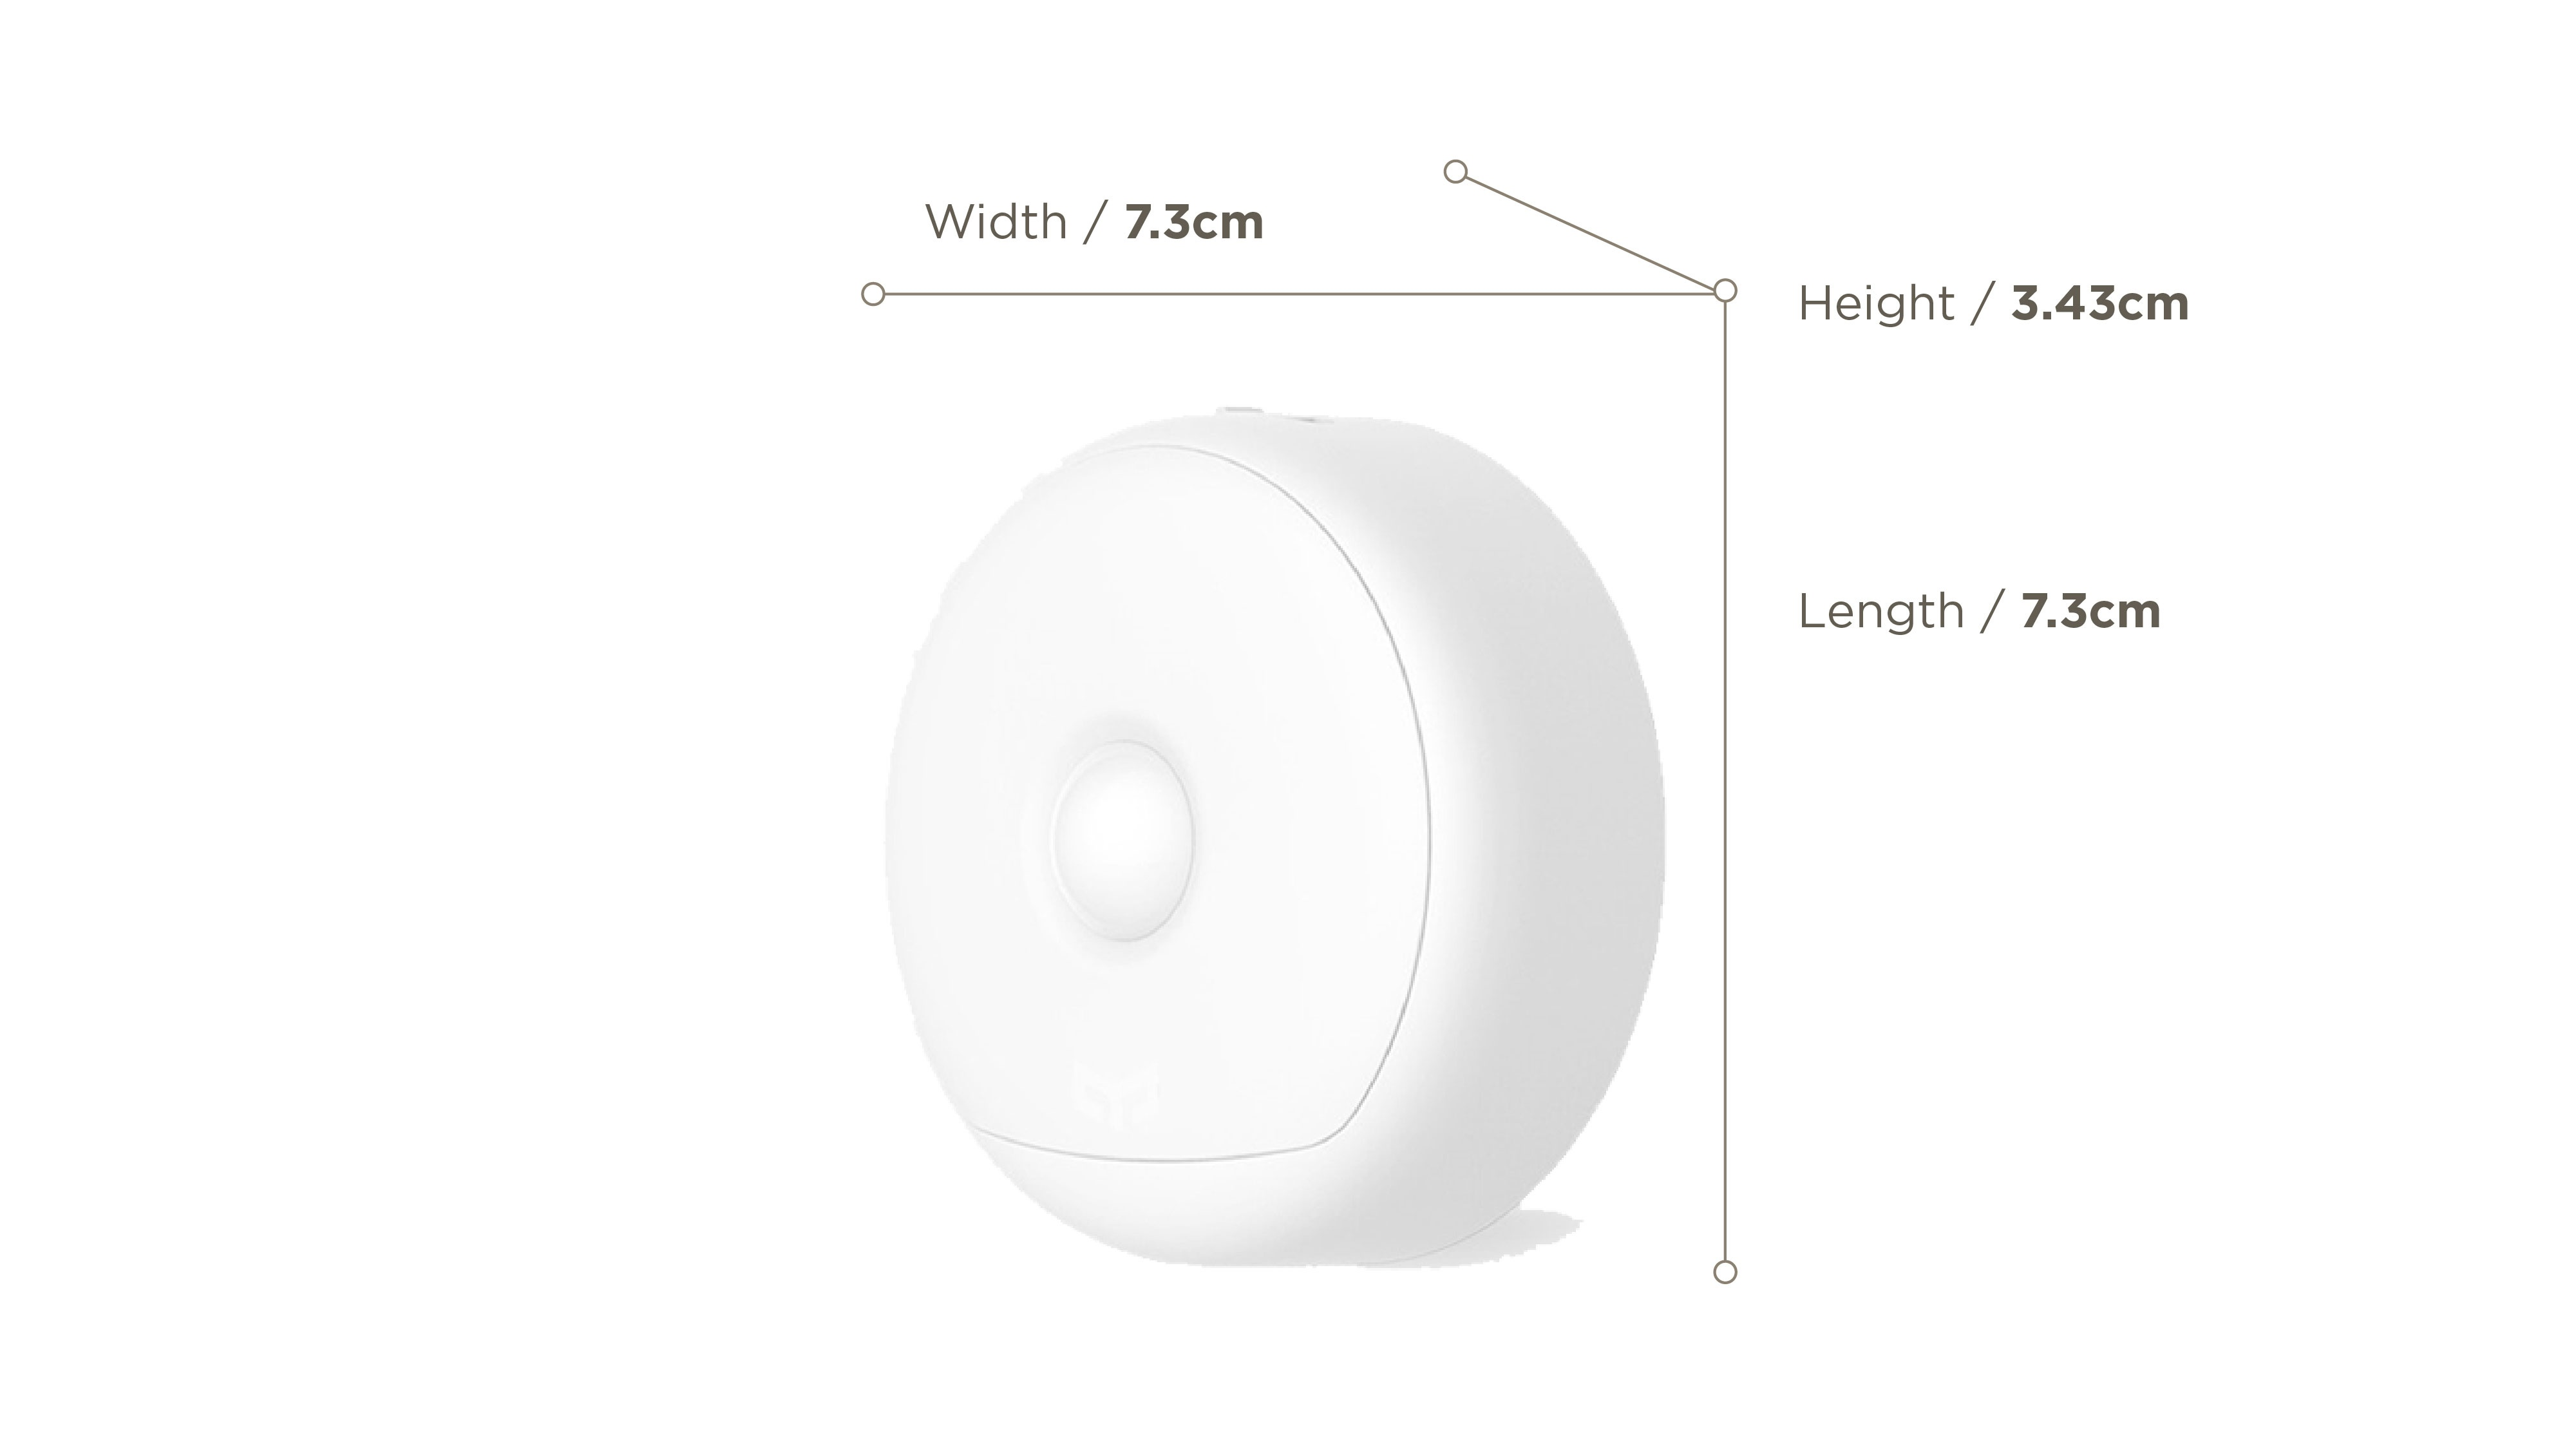 Induction Night Light 11 - Sneapy